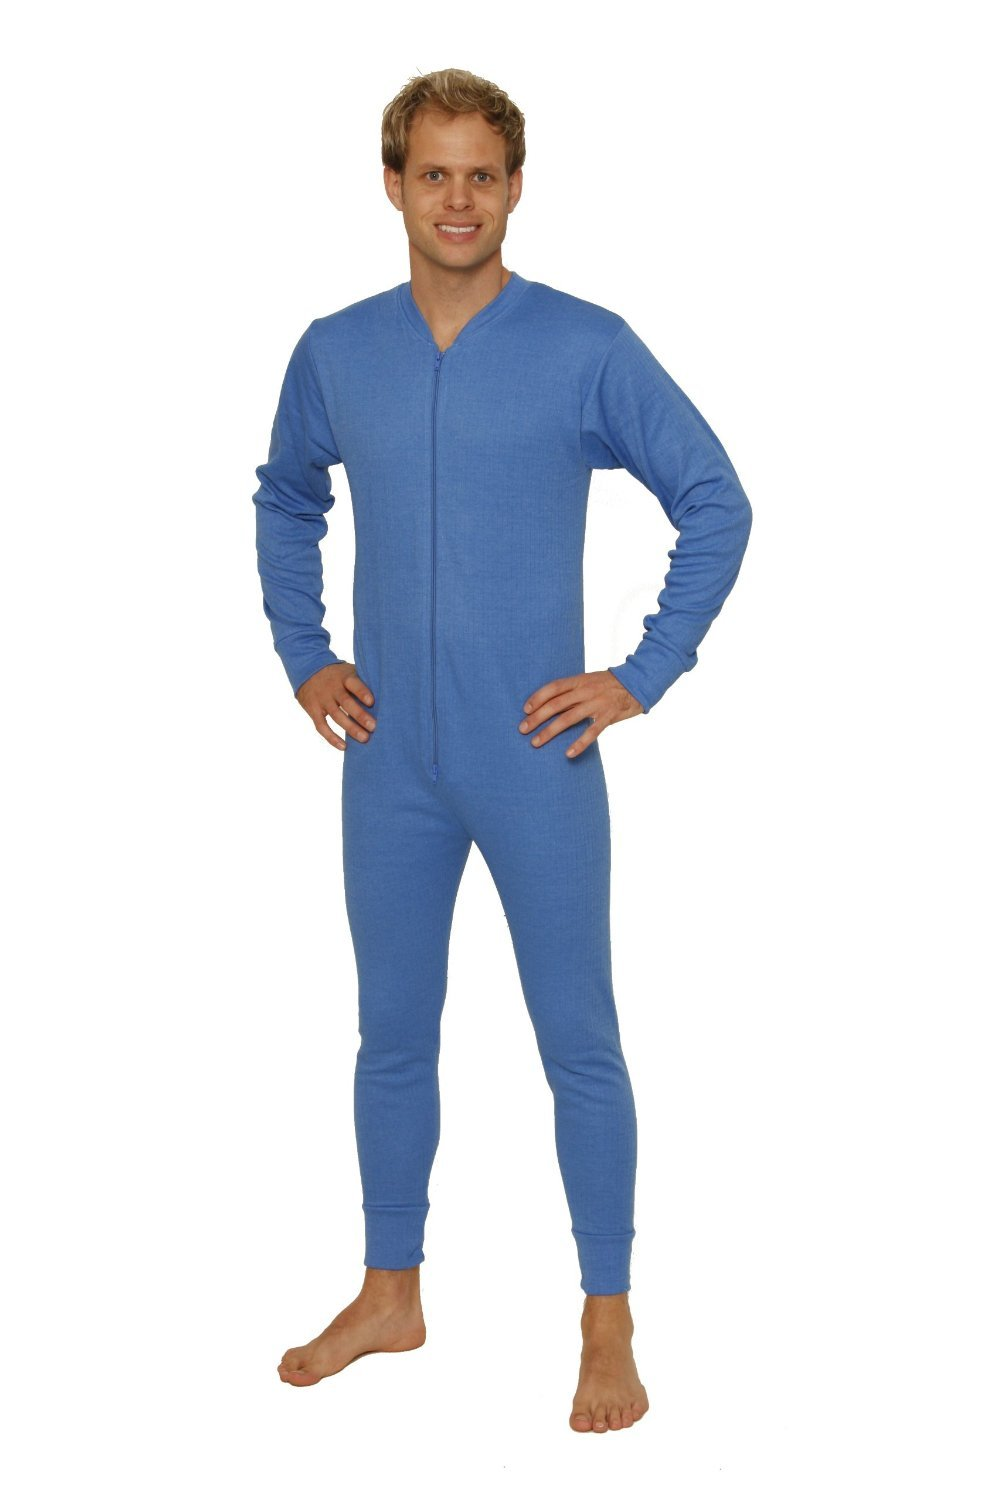 Octave 3 Pack Mens Thermal Underwear All in One Union Suit/Thermal Body Suit (Medium: Chest 36-38 inches, Blue) by Octave